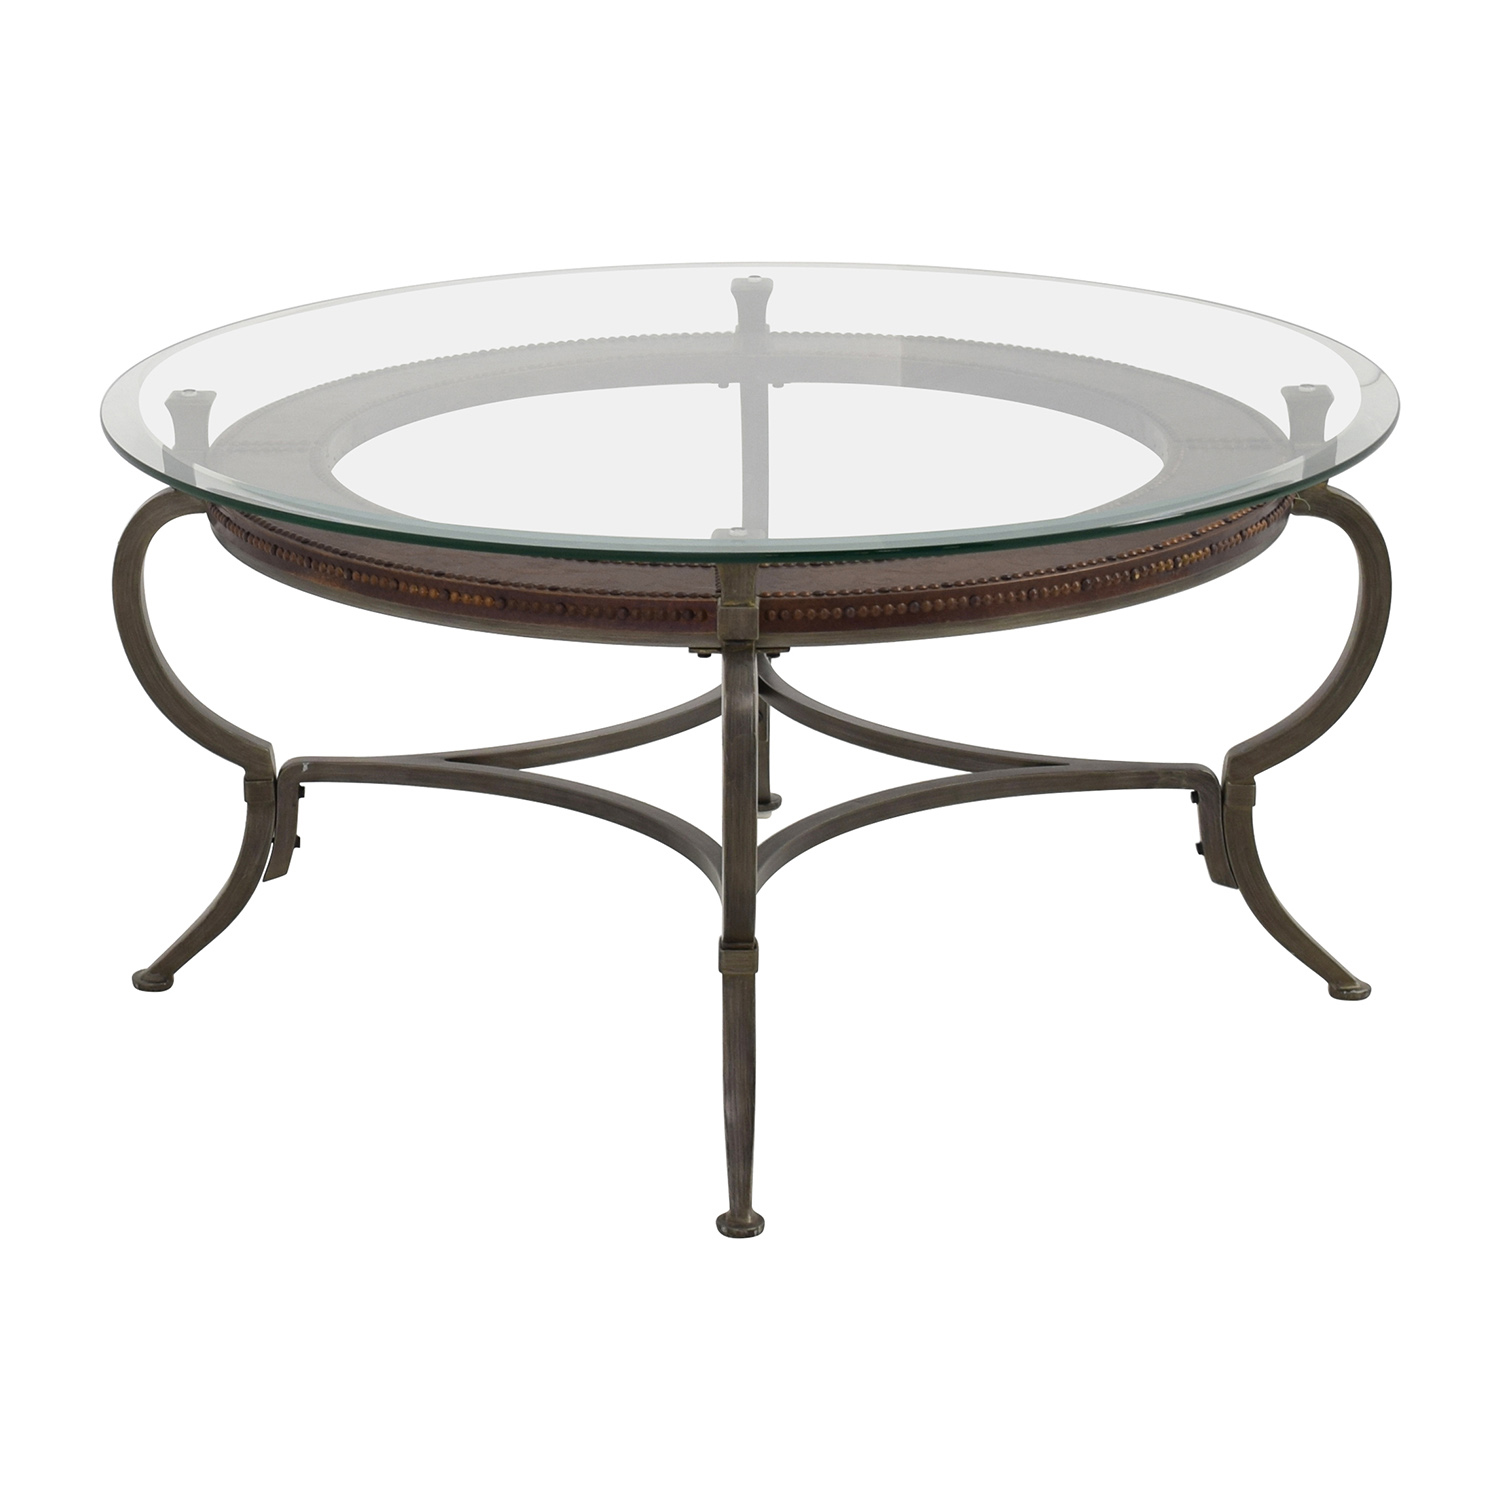 86 off macy 39 s macy 39 s round metal and glass cocktail Round cocktail table